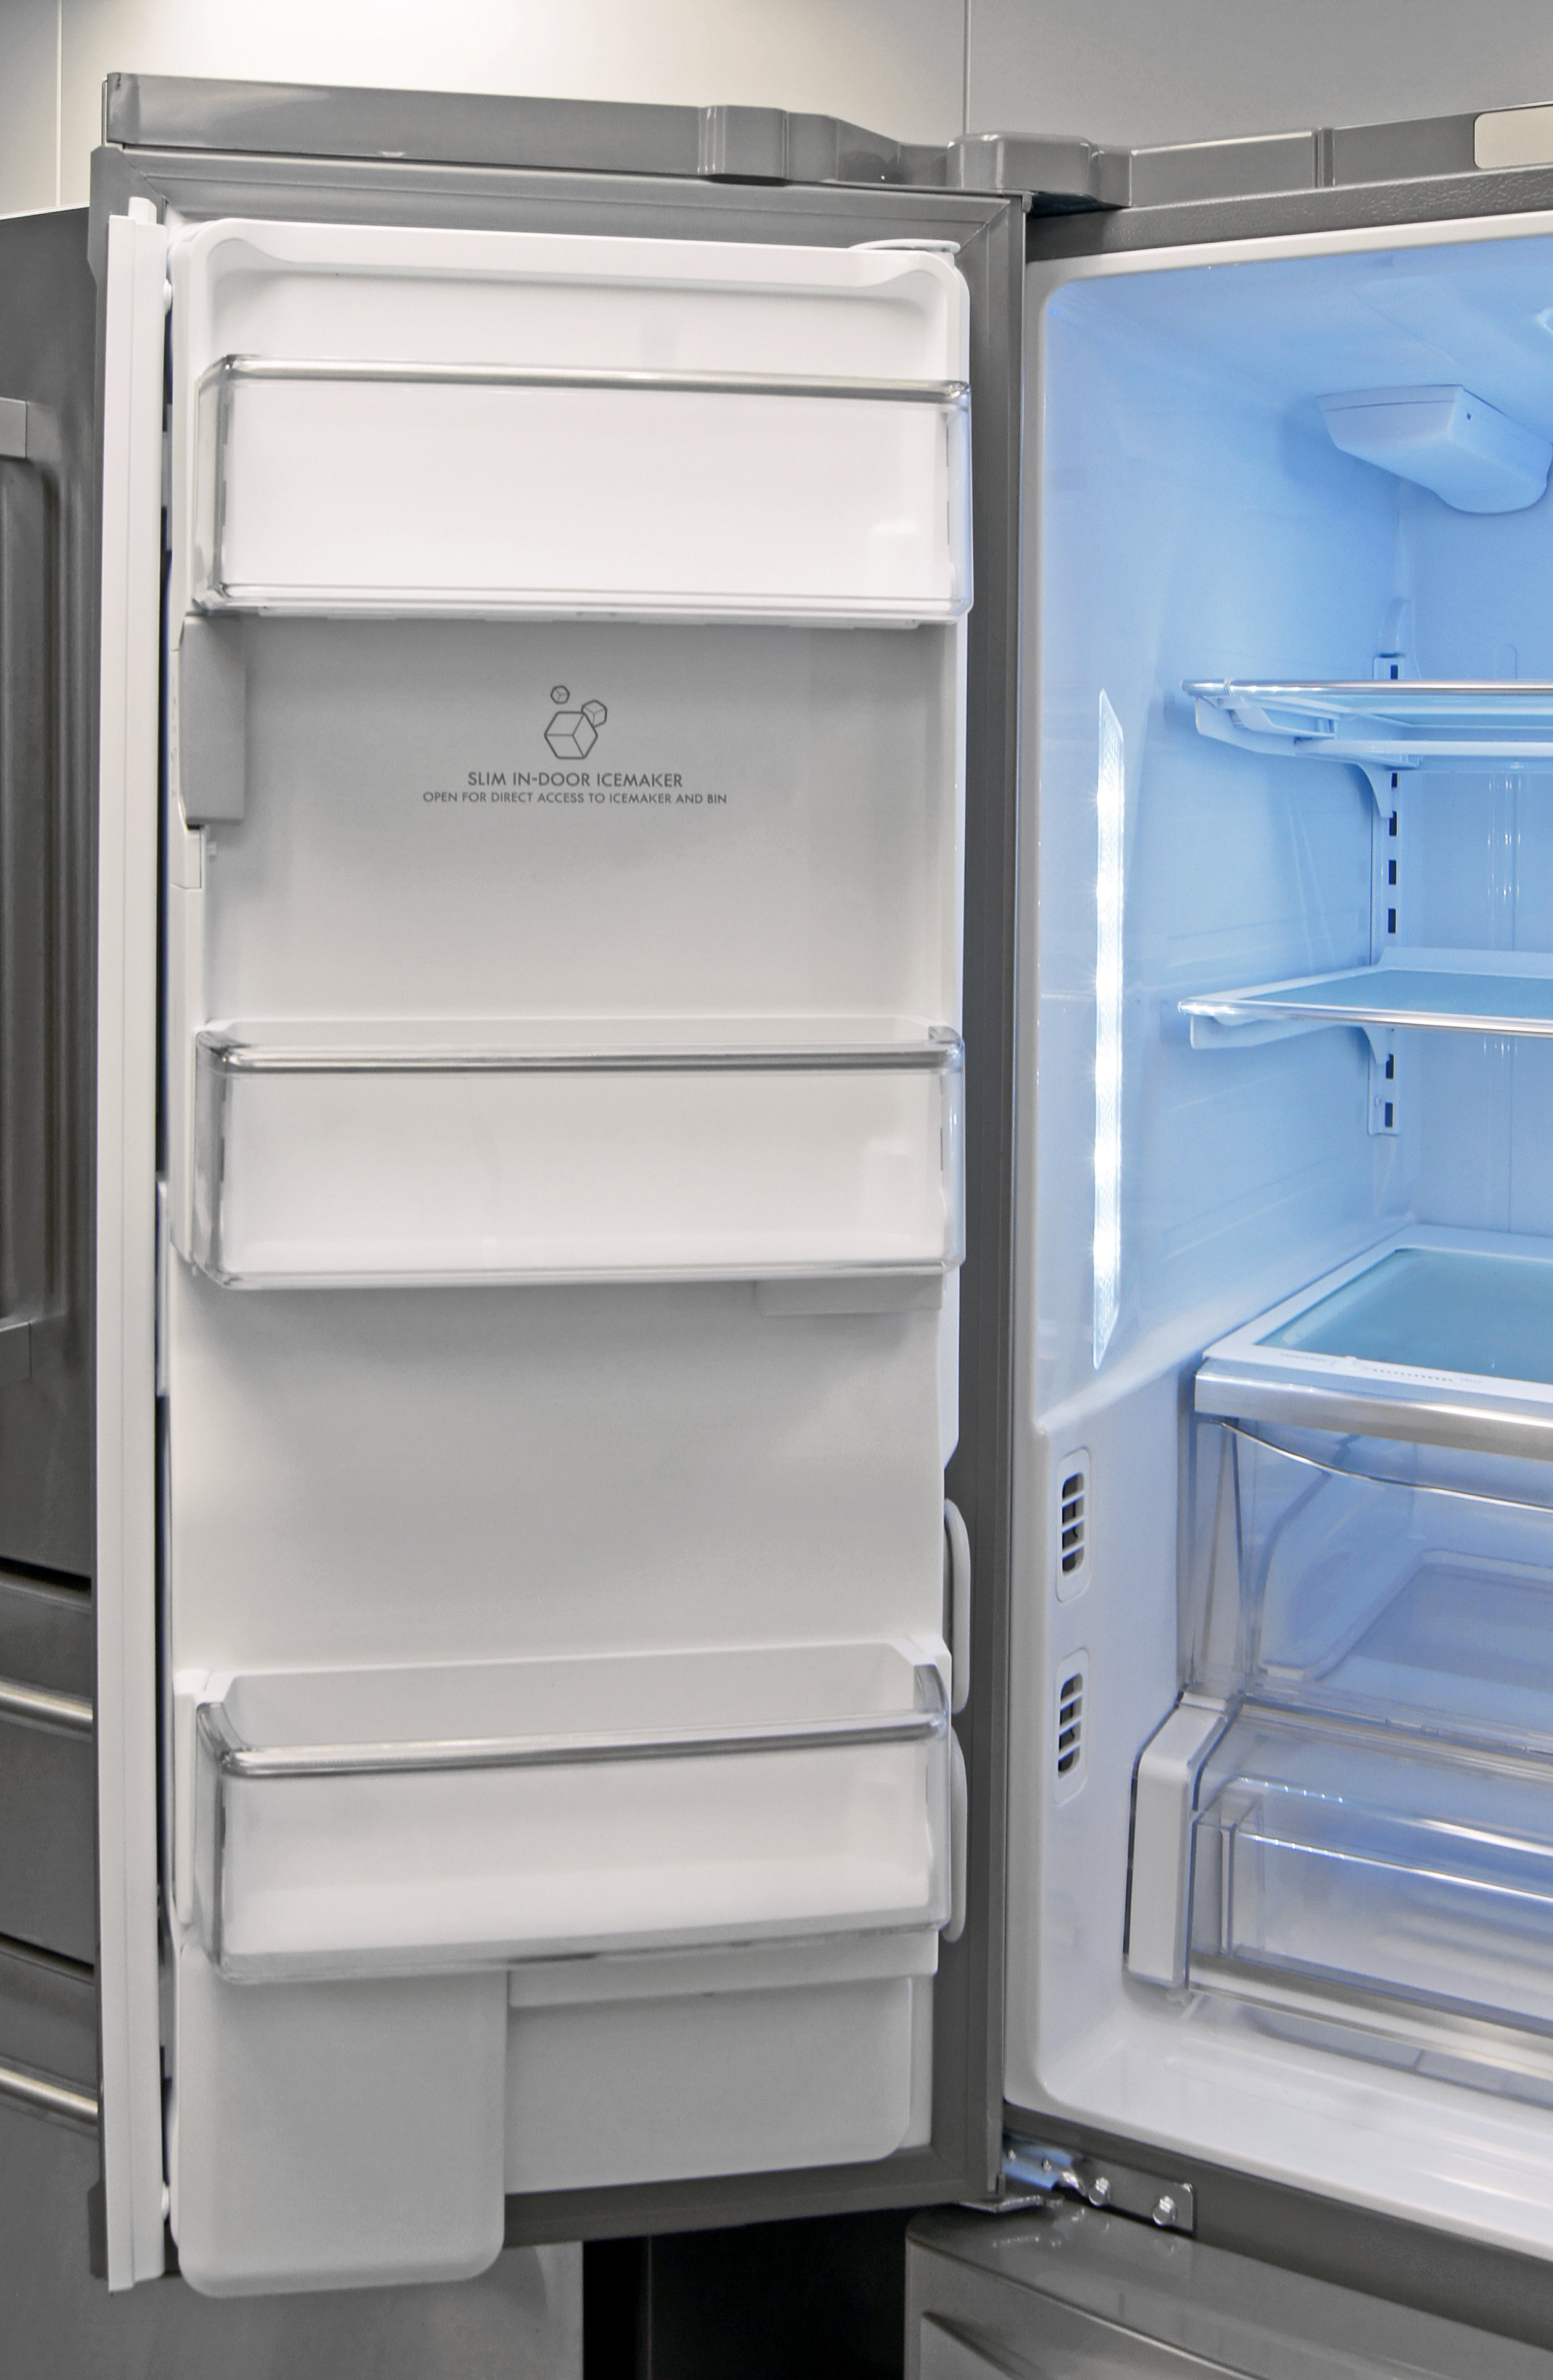 The Kenmore Elite 74033's left door holds some shallow shelves for supplemental storage.